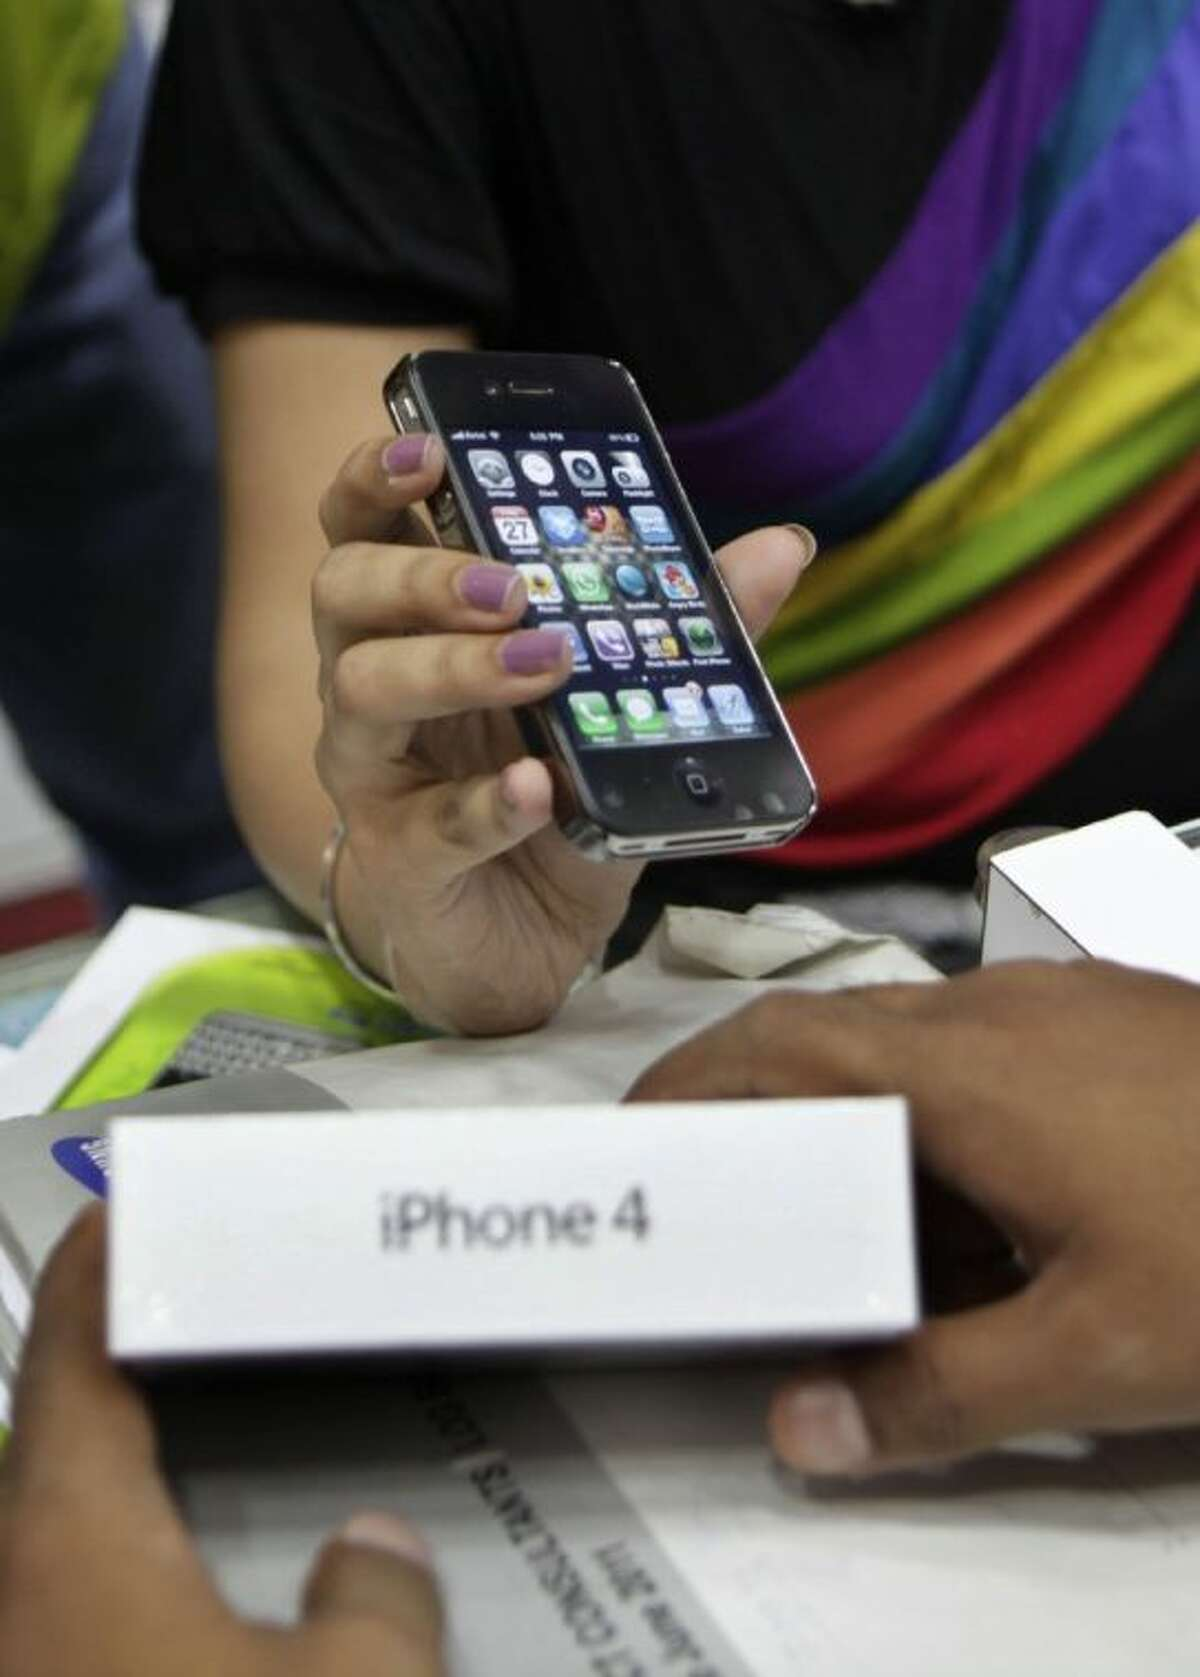 U.S. President Obama's trade representative on Saturday, Aug. 3, 2013, vetoed a ban on imports of the iPhone 4 and some variations of the iPad 2, reversing a ruling in favor of rival South Korean electronics company Samsung.